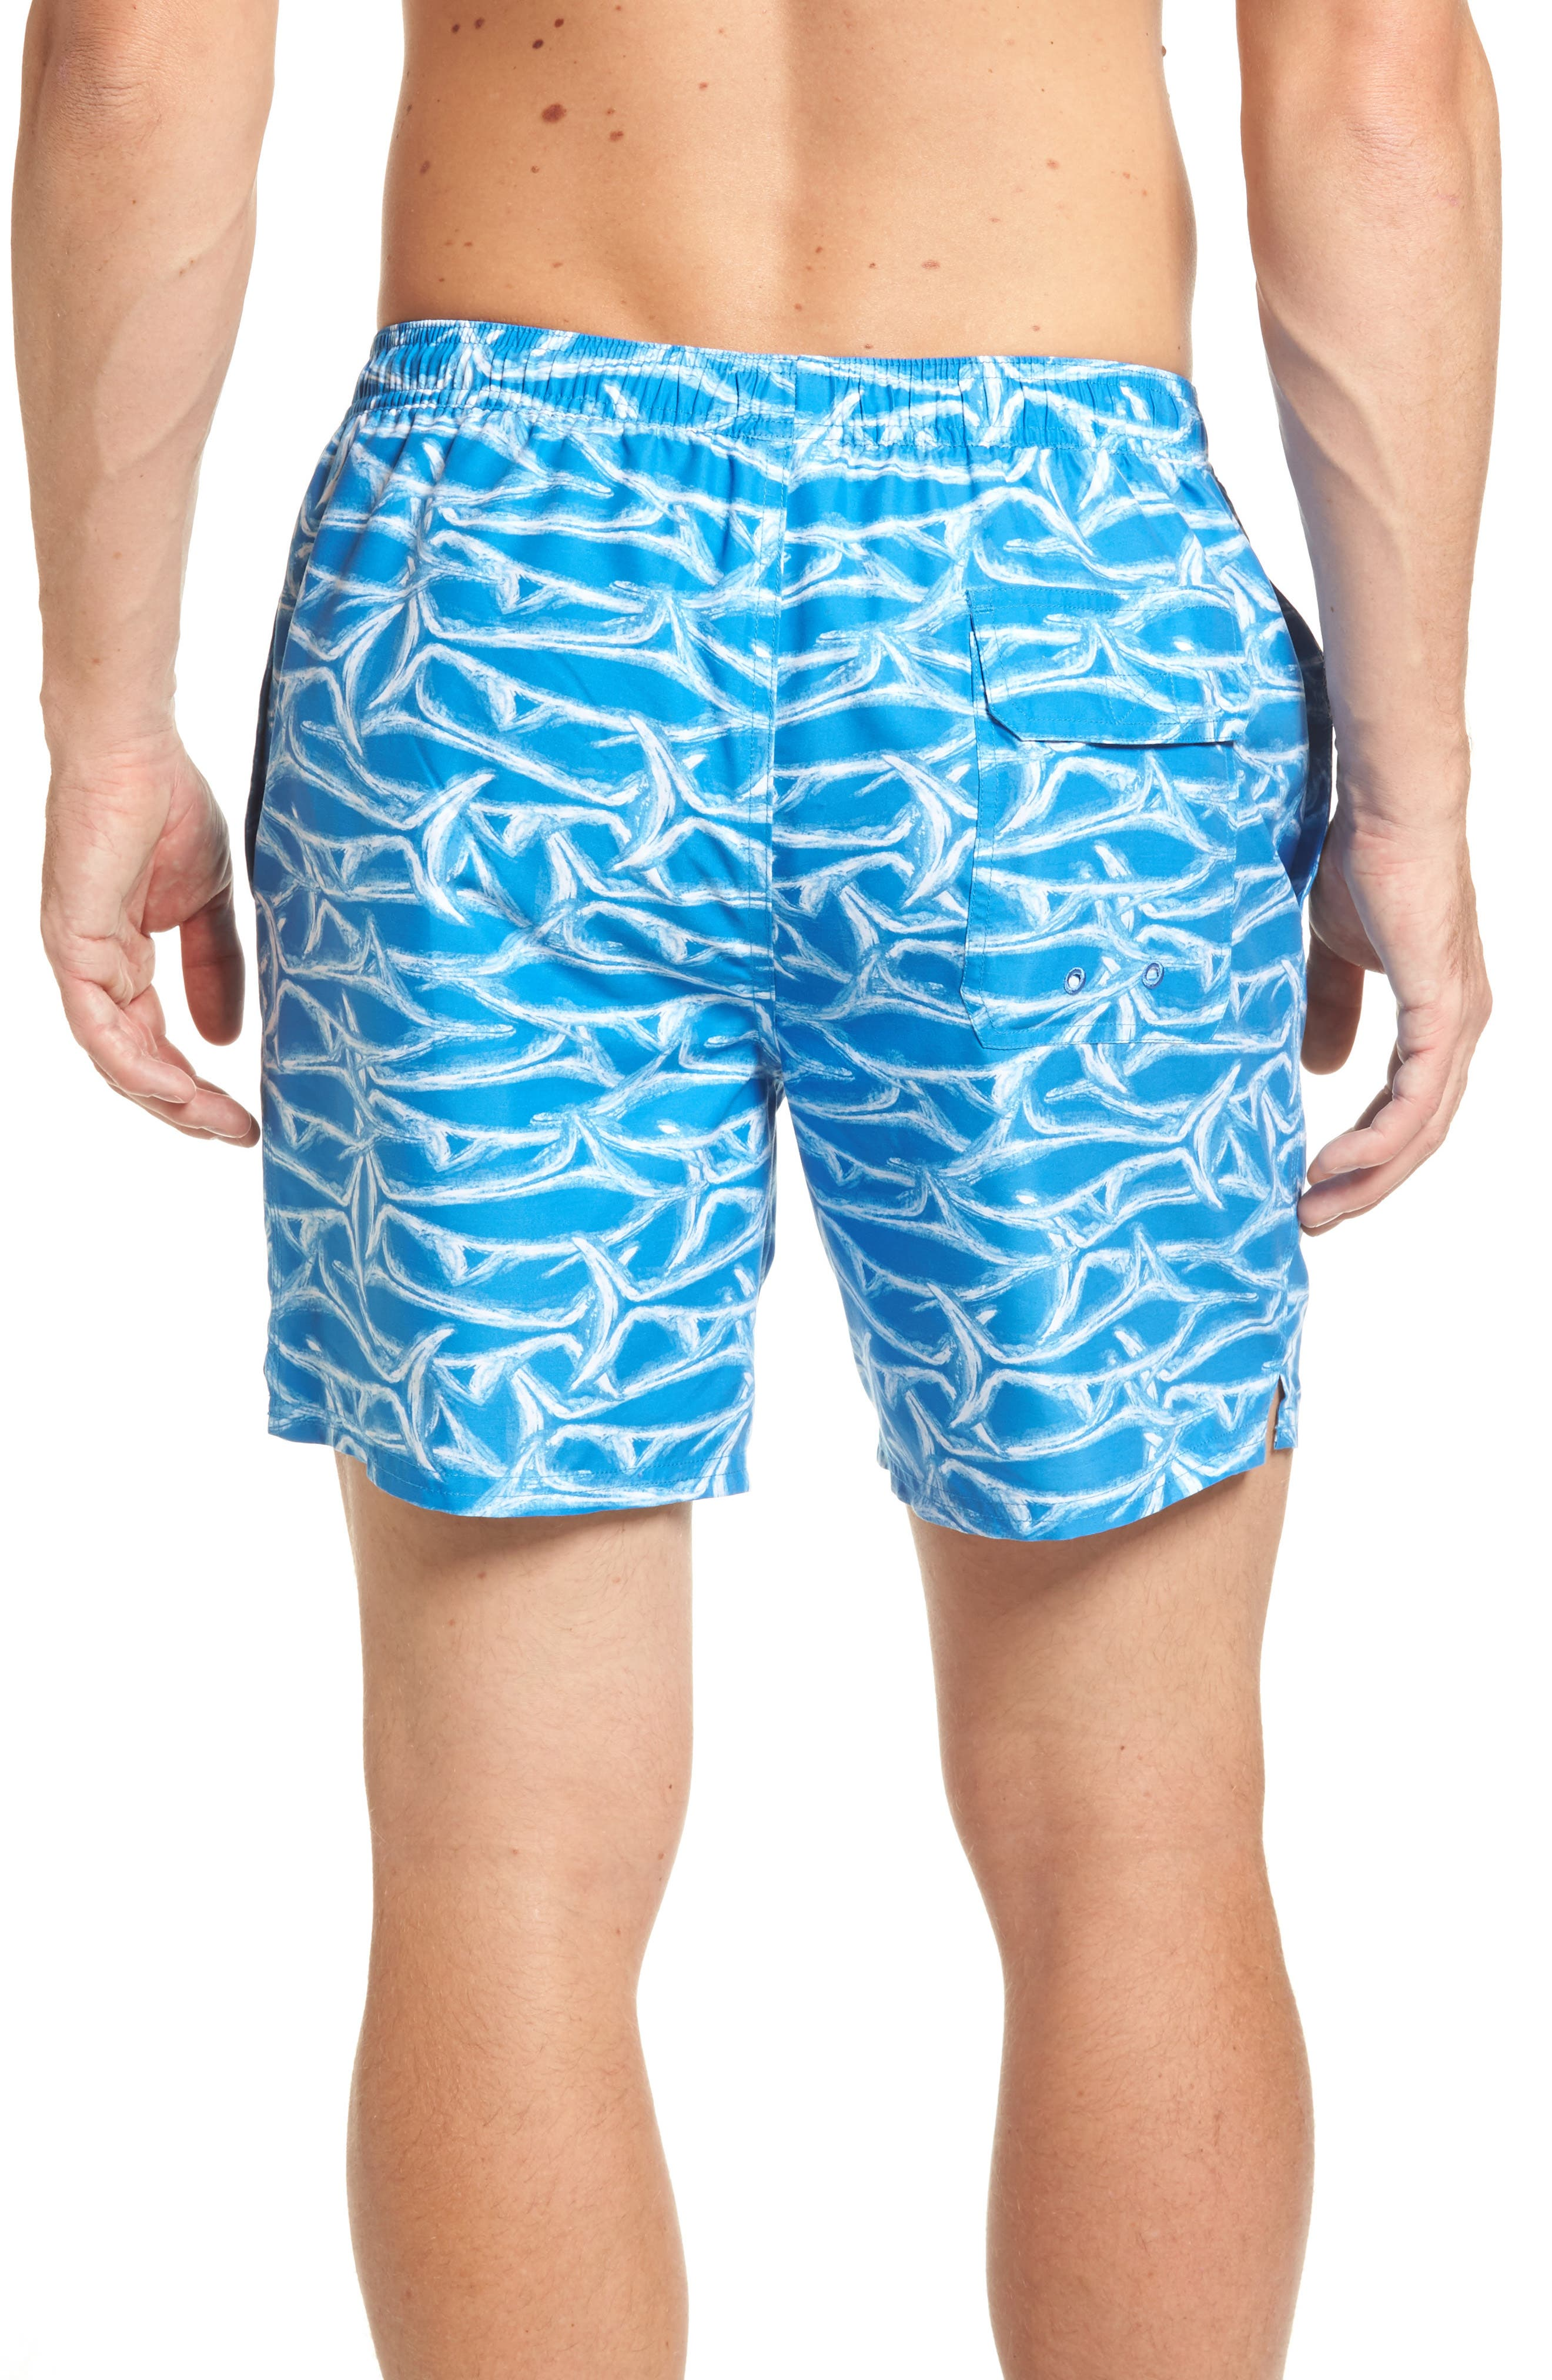 Brushed Marlin Chappy Swim Trunks,                             Alternate thumbnail 2, color,                             496